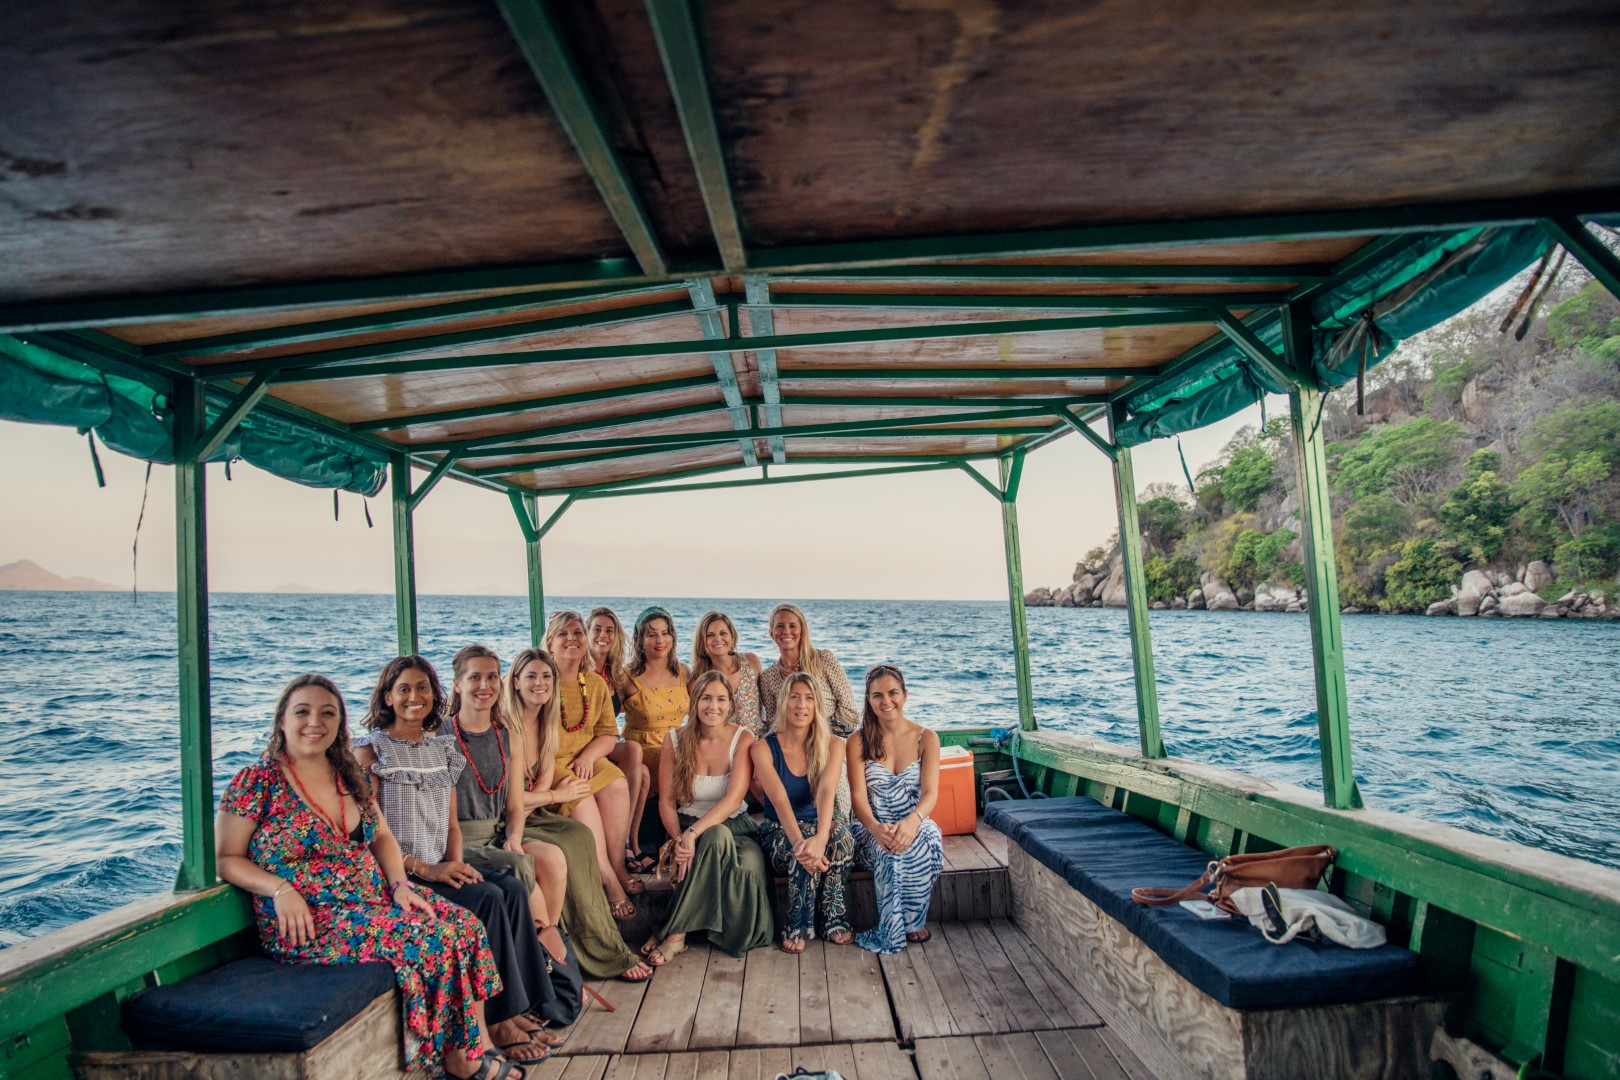 Malawi Safari Trip Travel Girls Getaways